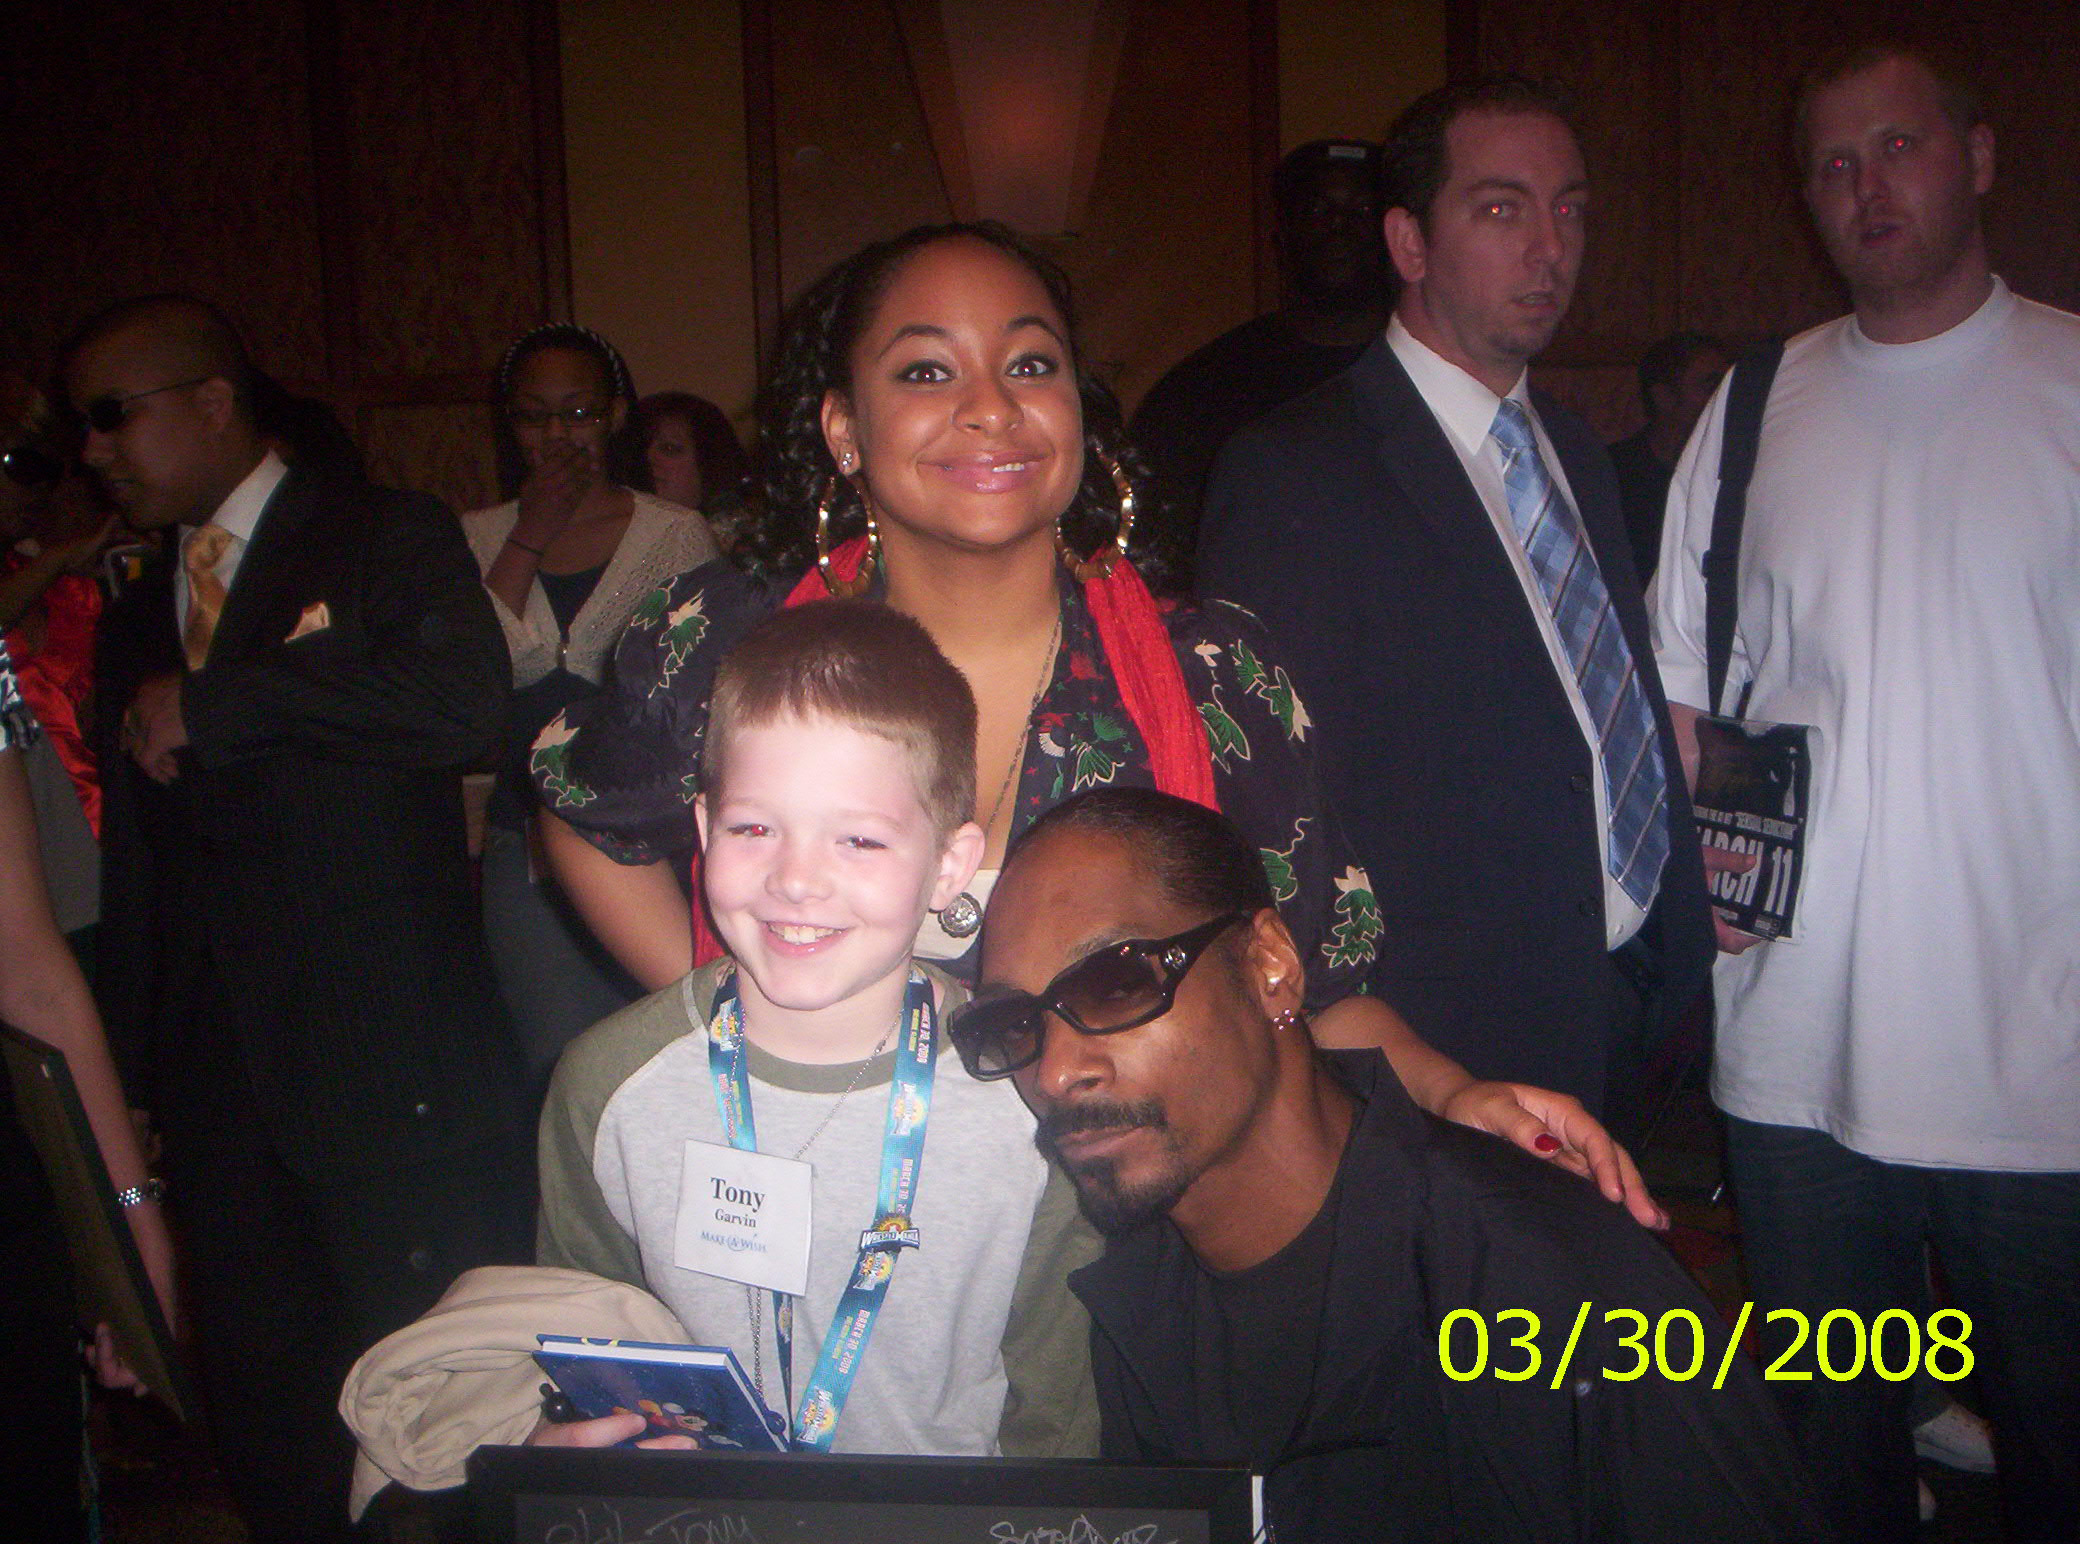 Tony with Raven Symone and Snoop Dogg Make A Wish WrestleMania XXIV